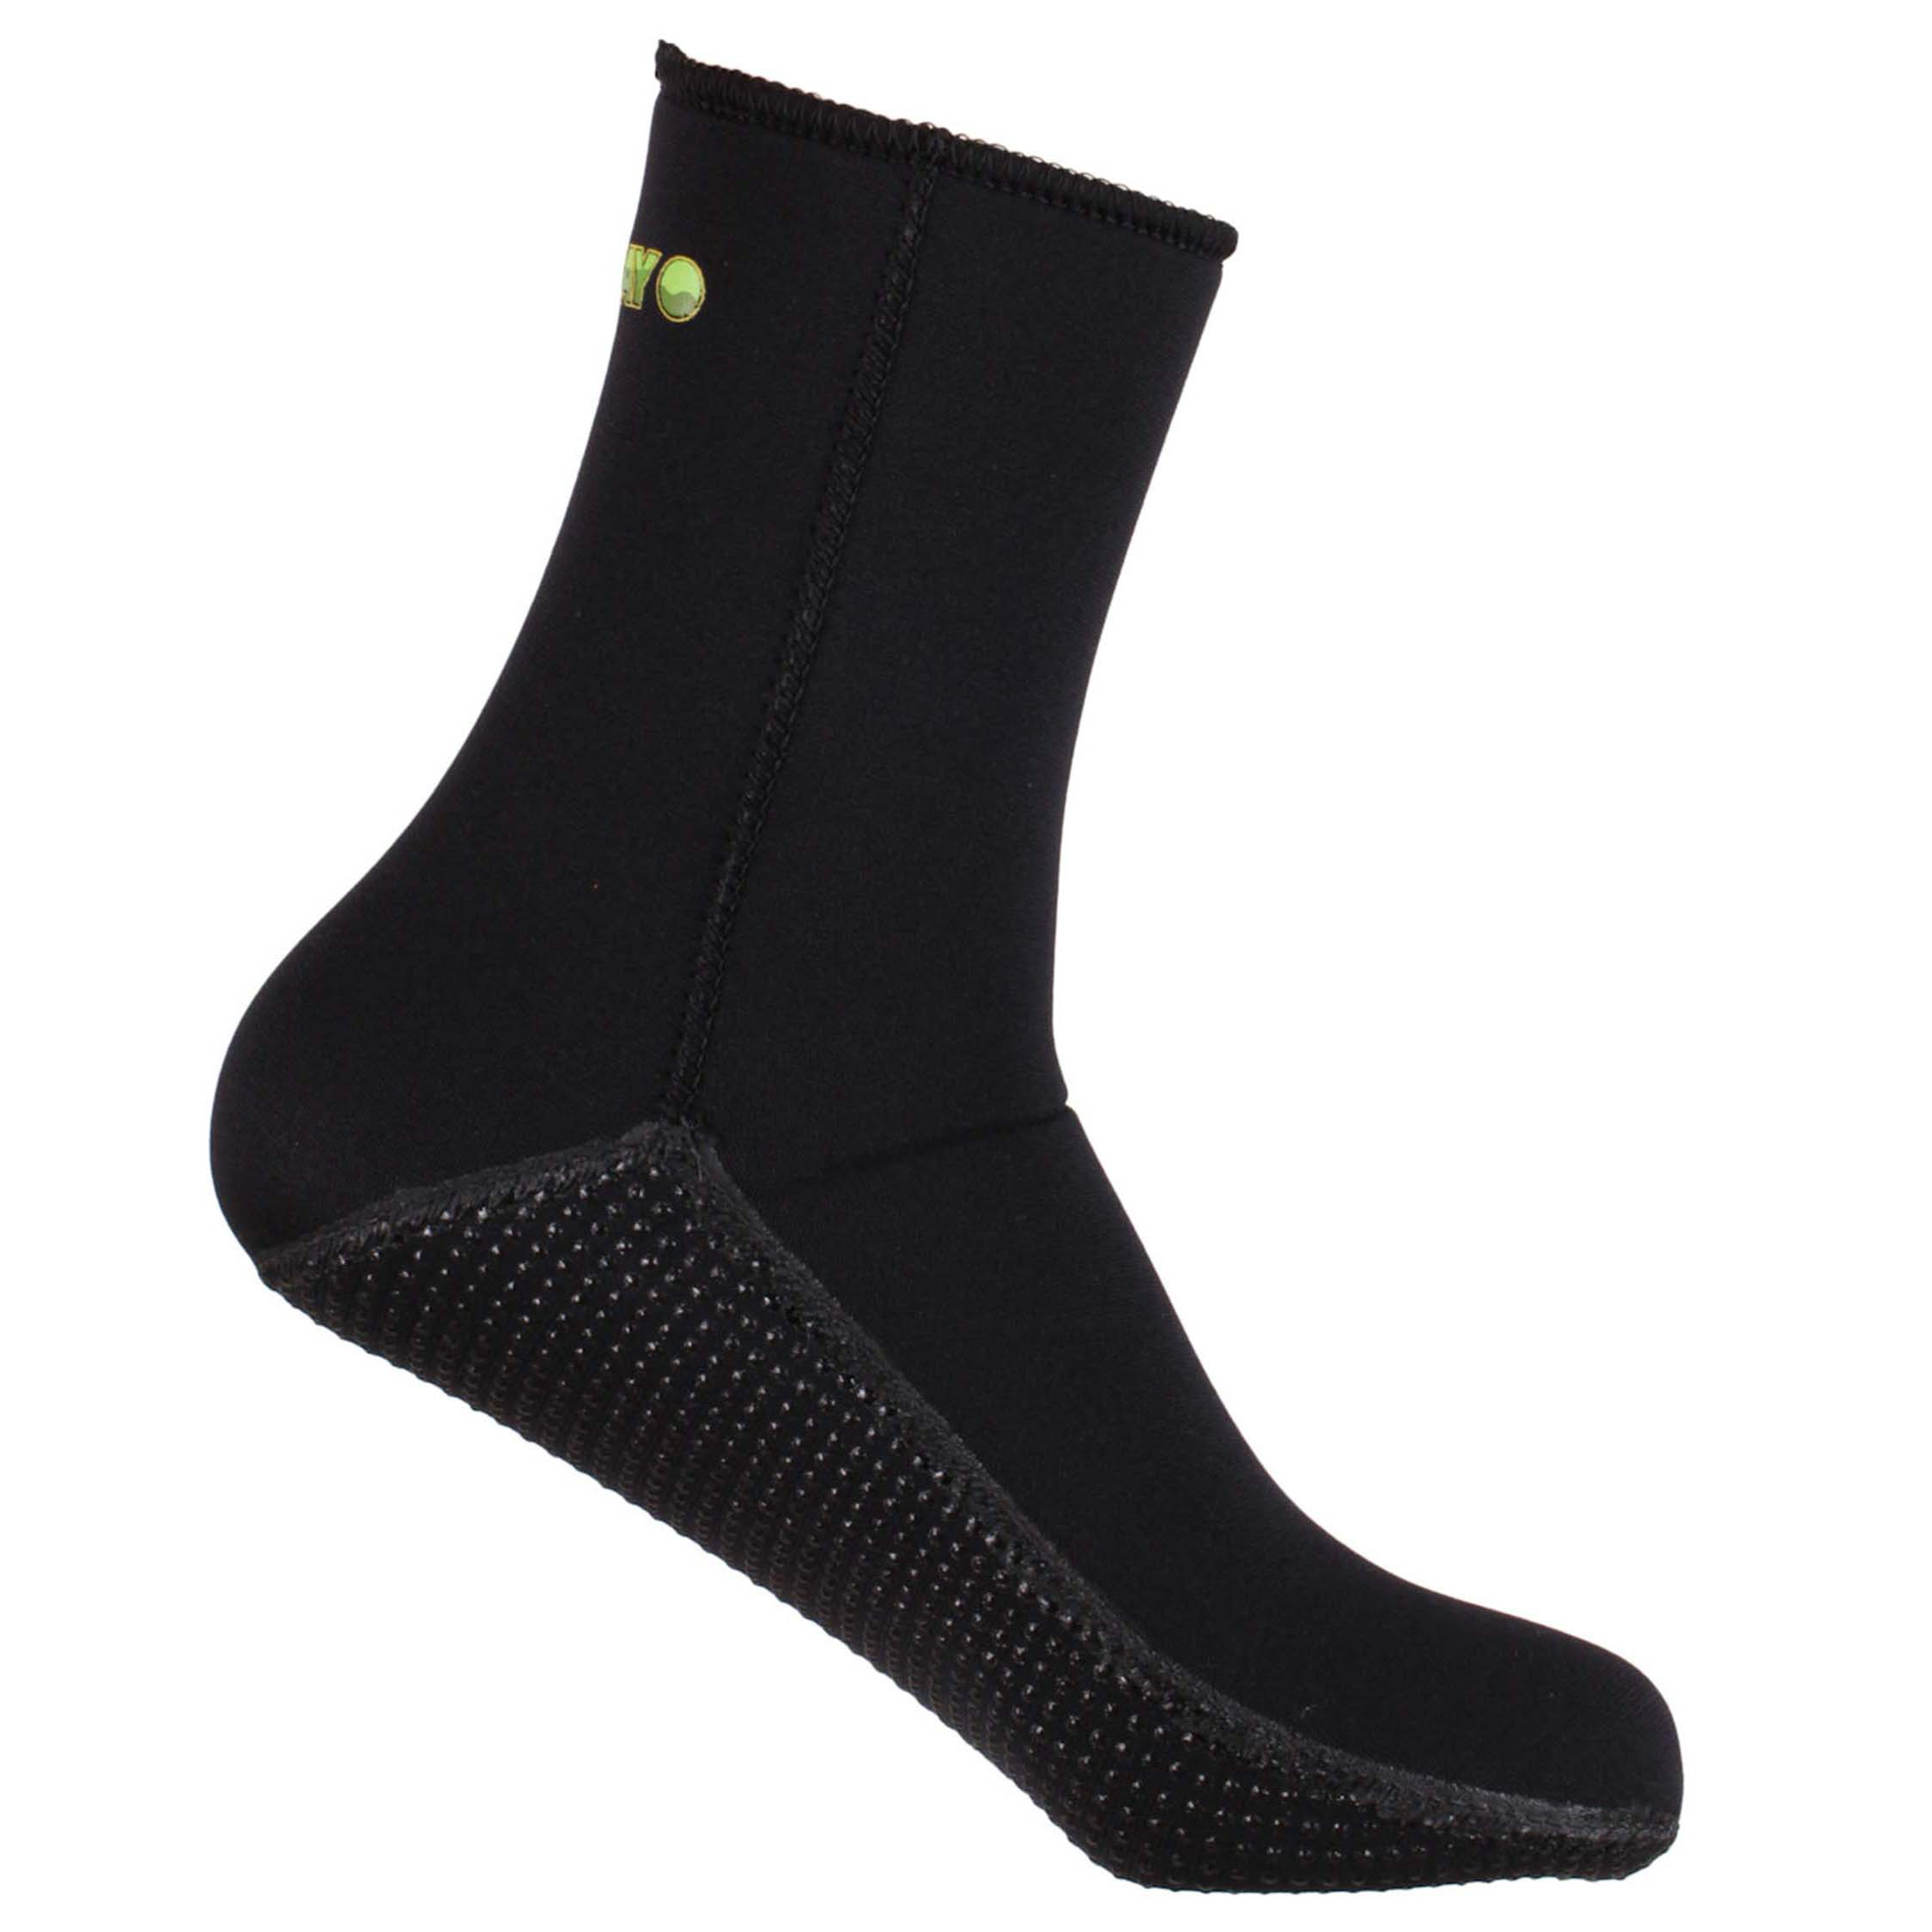 Yazbeck-All-Black-Thermoflex-Socks-Titanium-Spearfishing-SKU66130